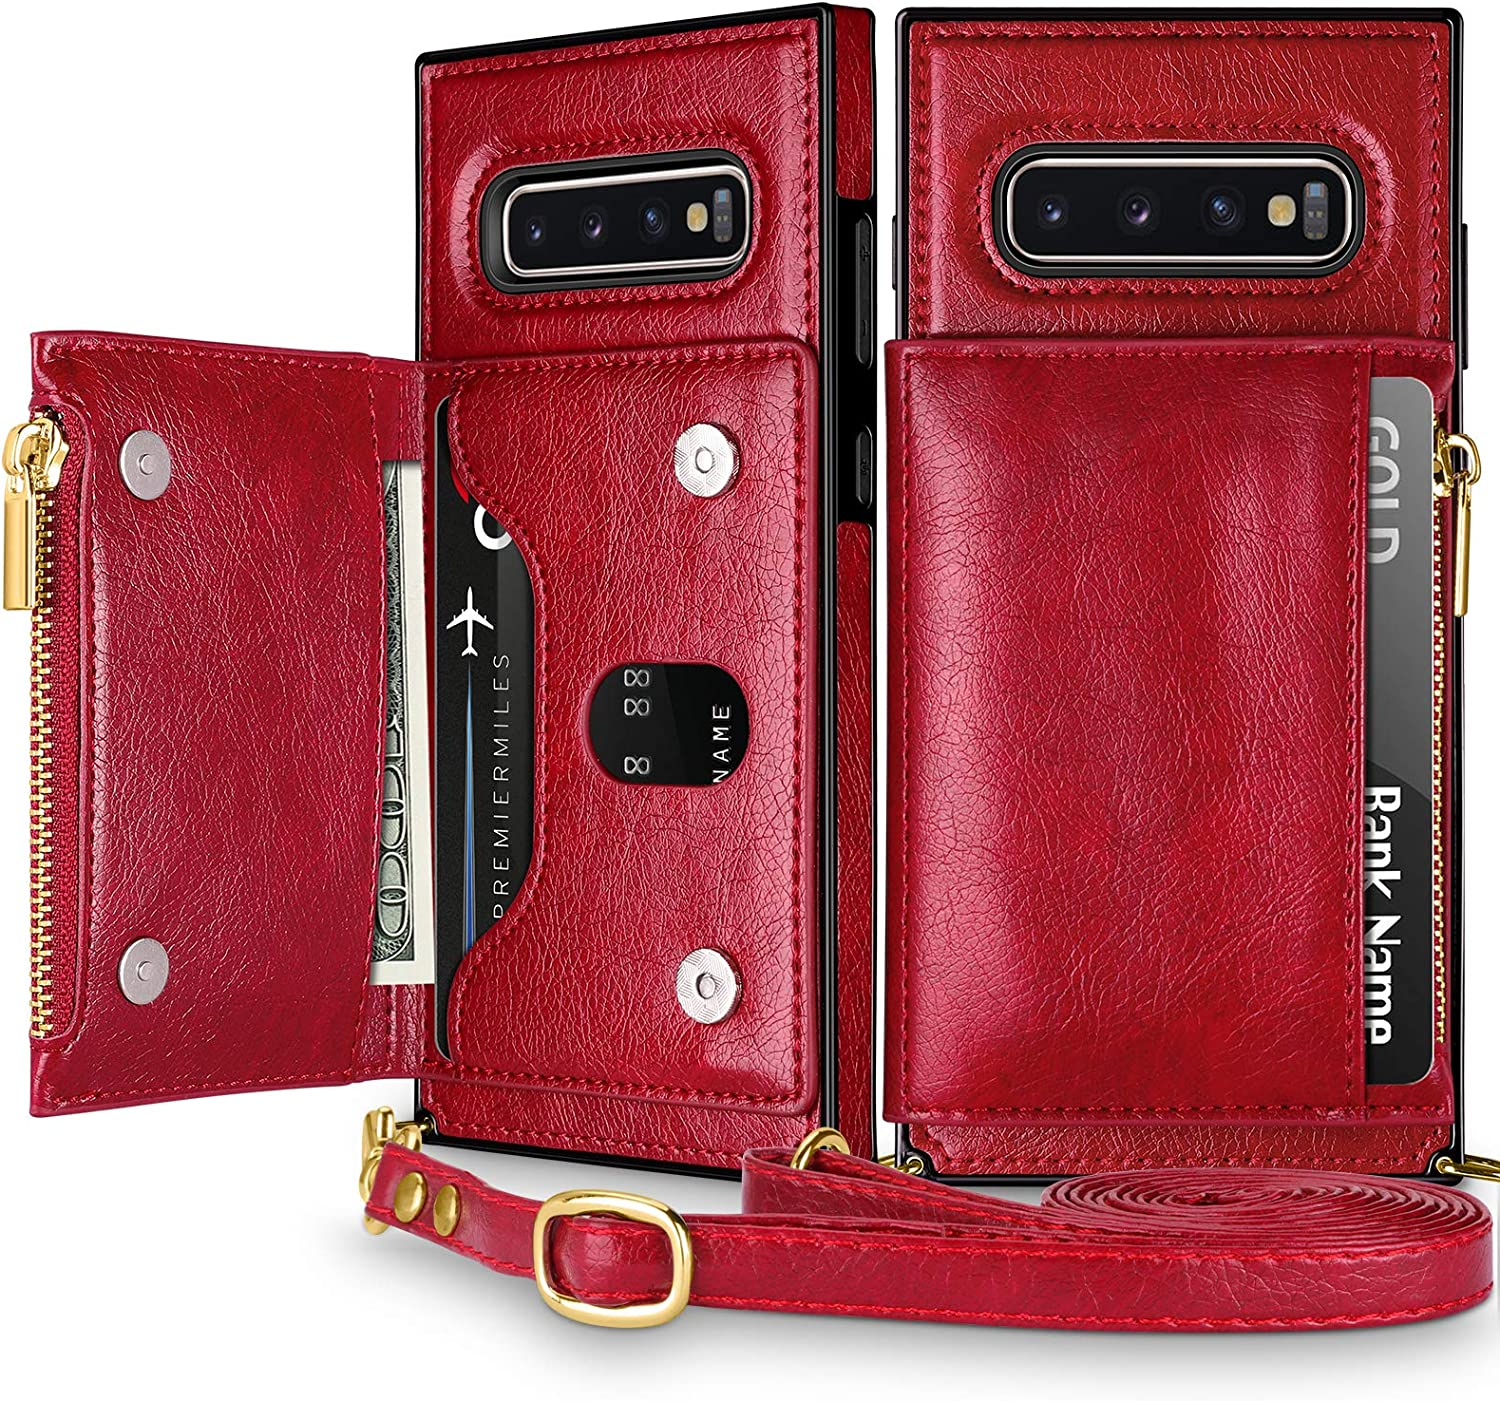 Coolden for Galaxy S10 Wallet Case with Lanyard Crossbody Strap Credit Card Holder Slot Square Cover Protective Soft PU Leather Zipper Back Case for 6.1 Inch Galaxy S10 Wine Red